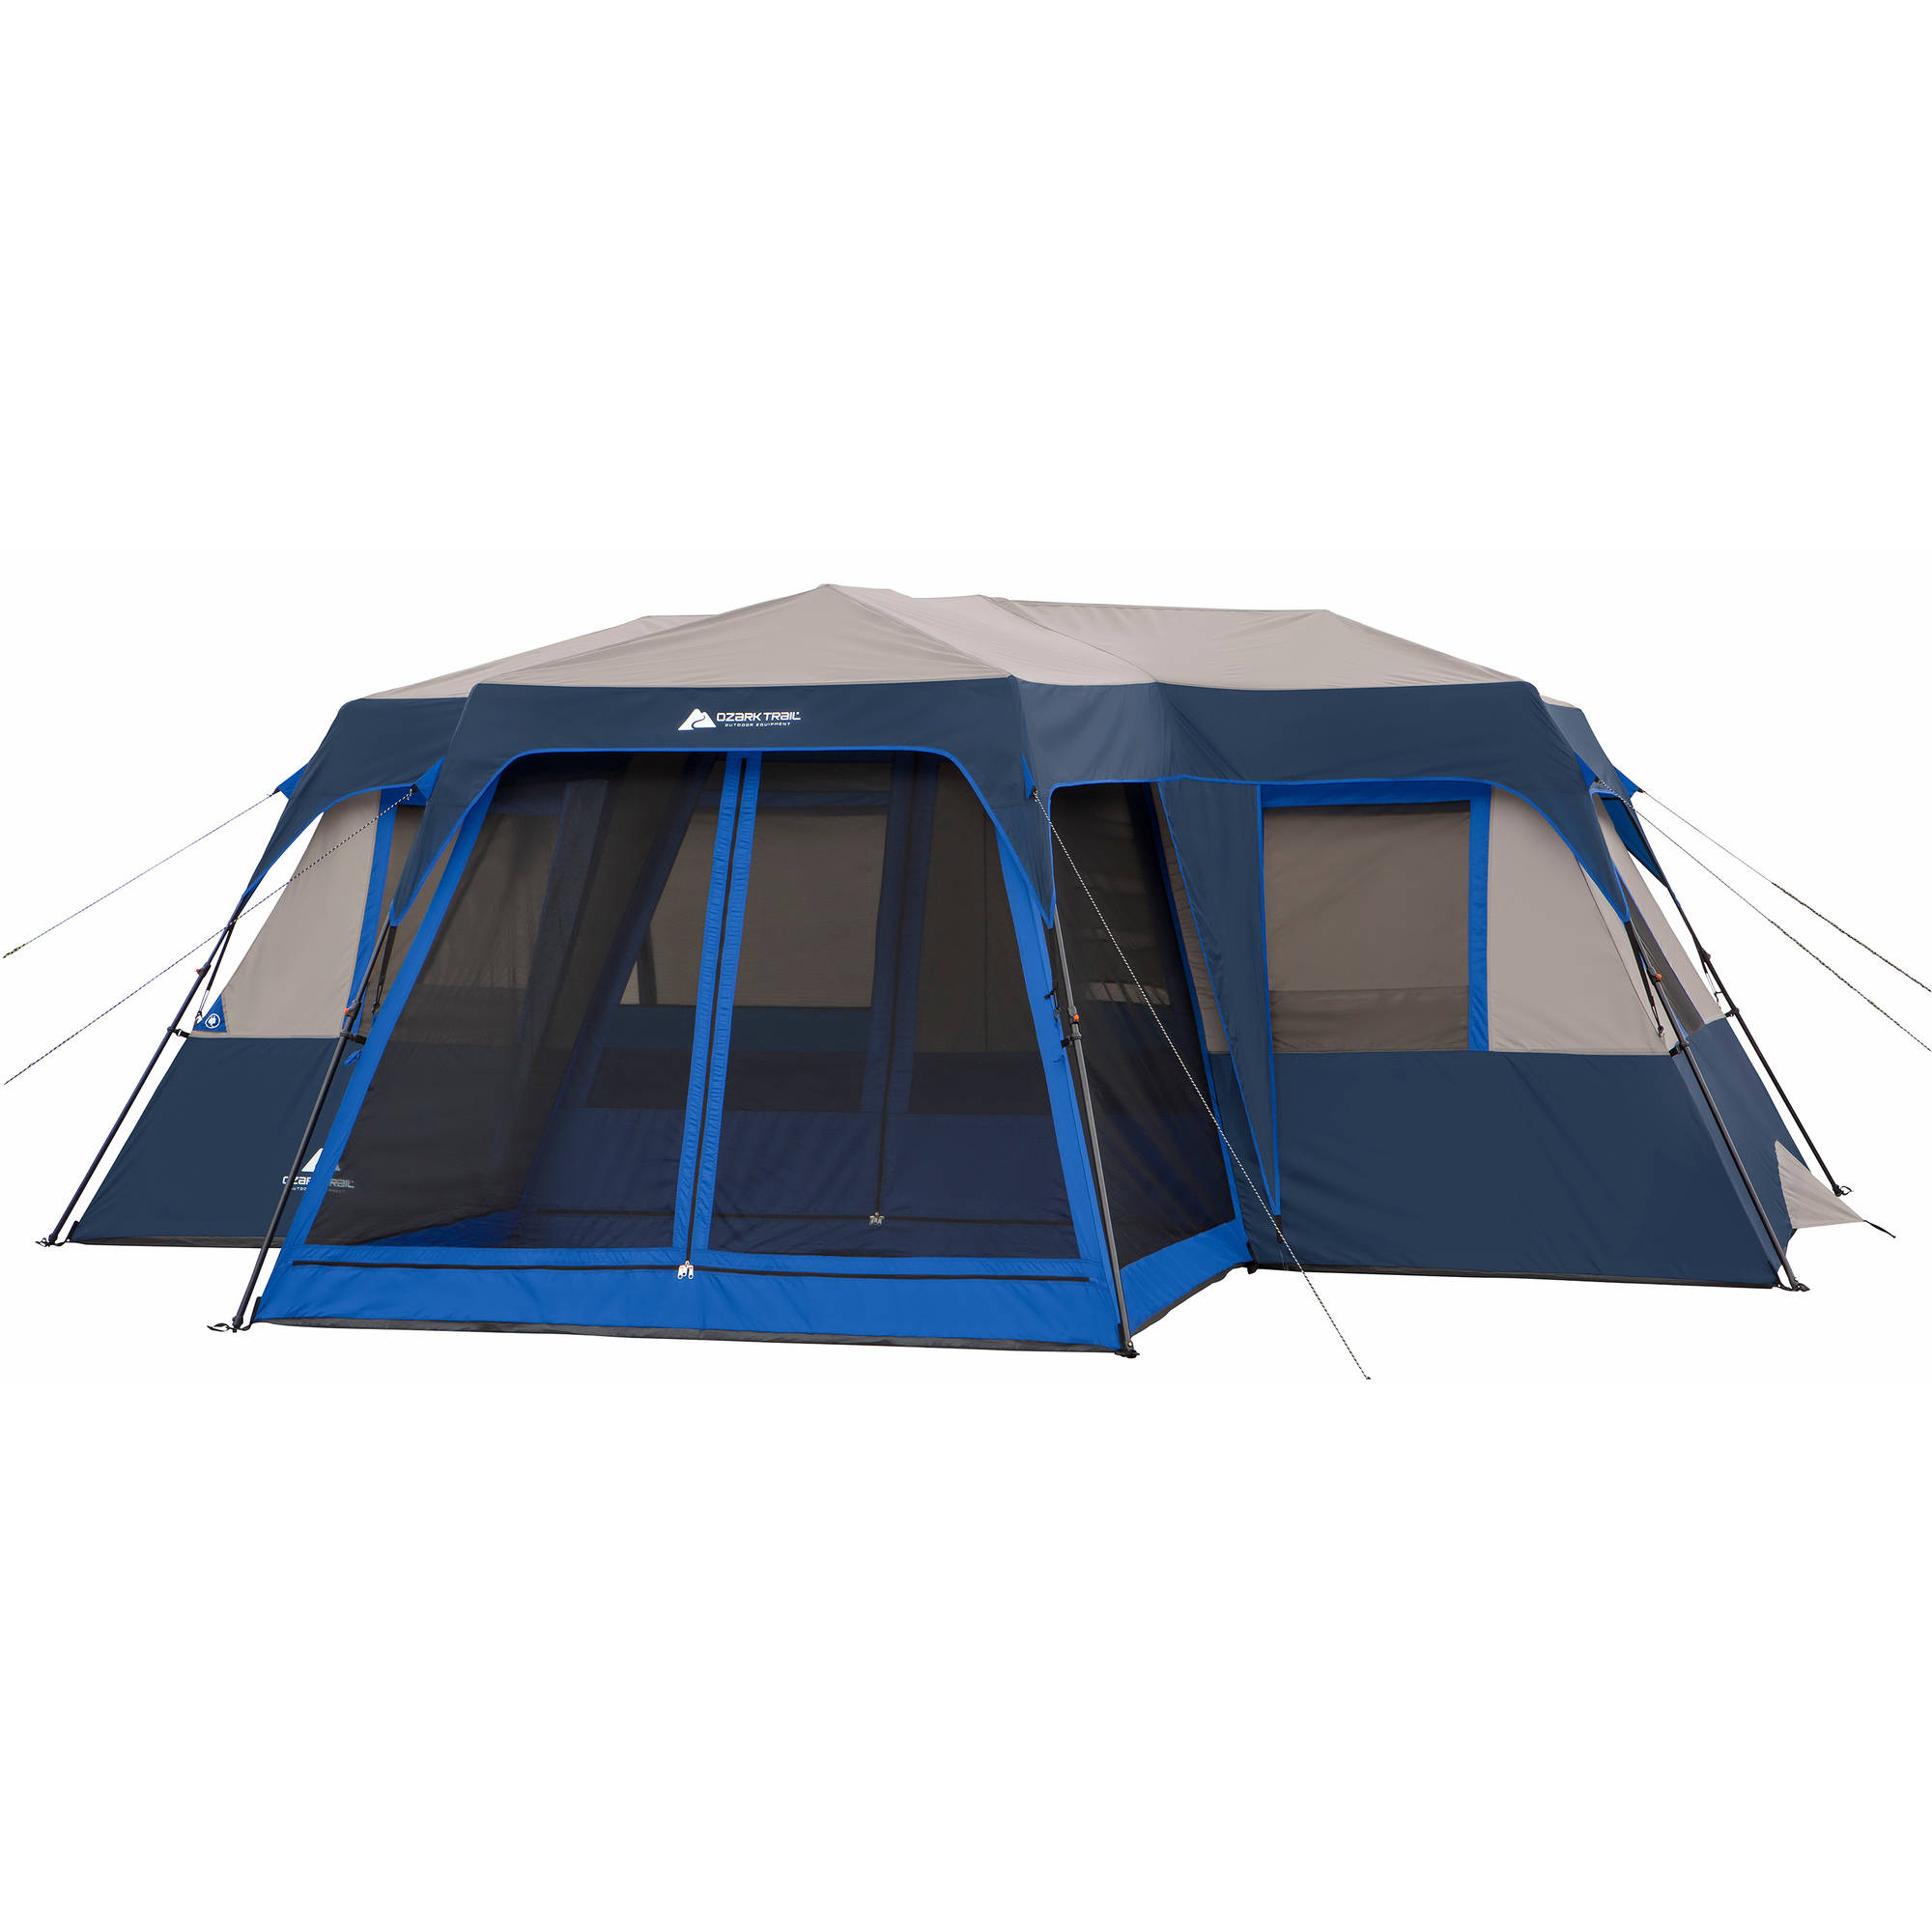 Ozark Trail 12 Person 2 Room Instant Cabin Tent with Screen Room  sc 1 st  Walmart & Ozark Trail 12 Person 2 Room Instant Cabin Tent with Screen Room ...